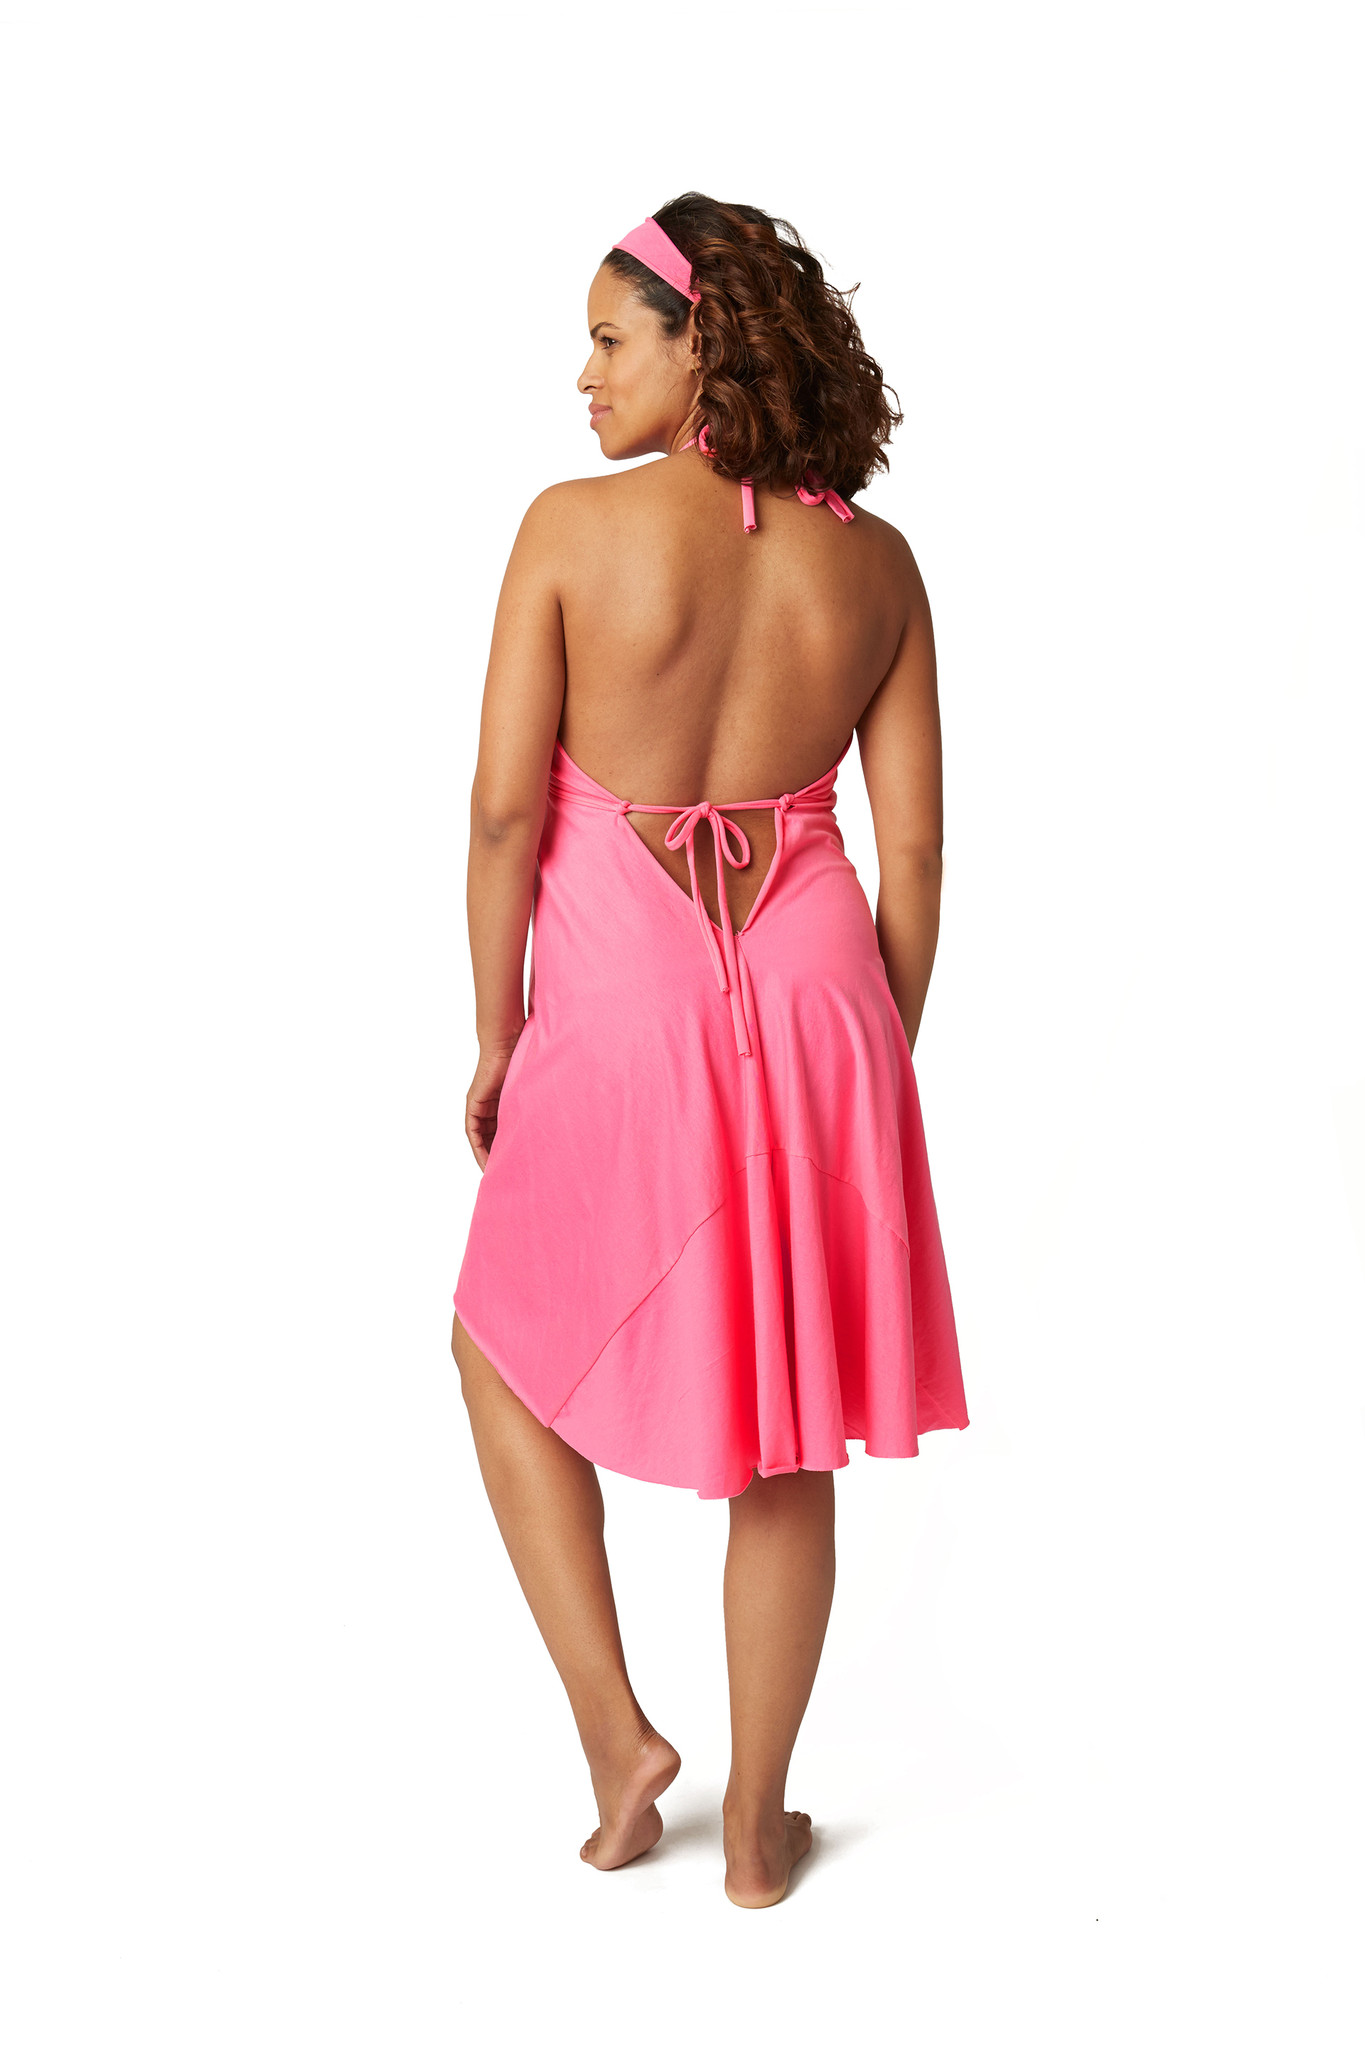 Pretty Pushers Original Labor and Delivery Gown - The Breastfeeding Den